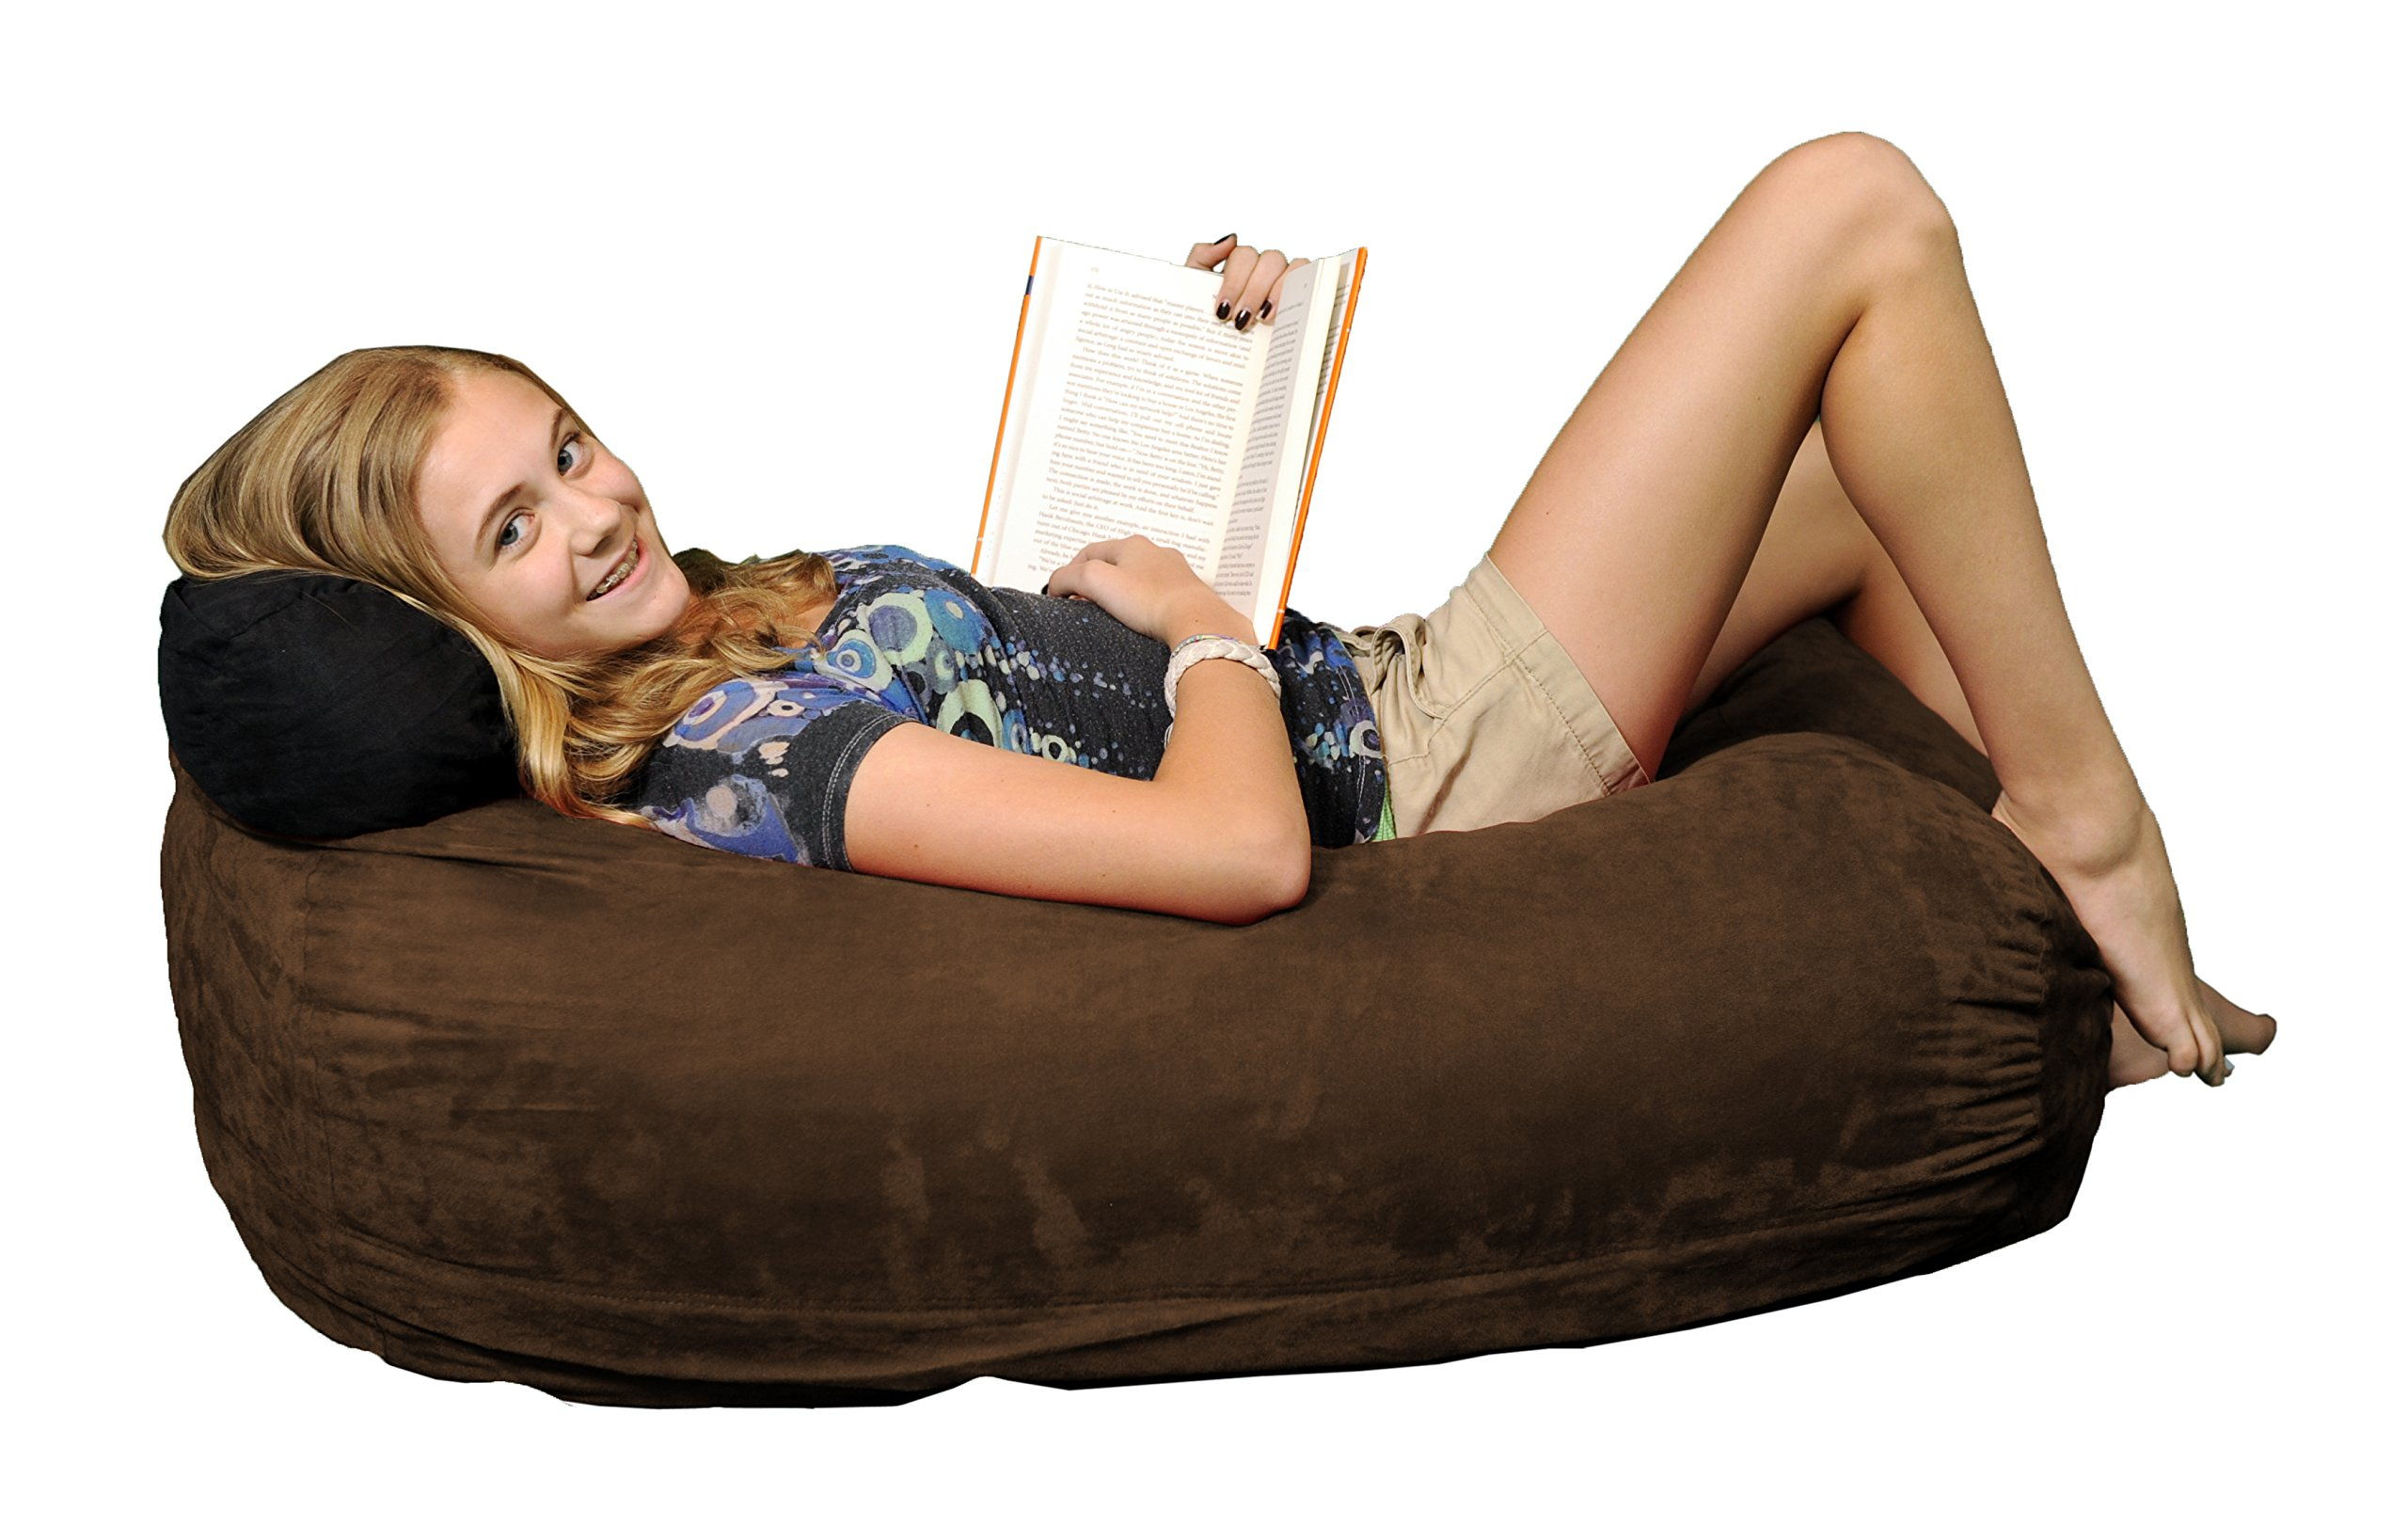 Chill Sack Bean Bag Chair: Large 4' Memory Foam Furniture Bag and Large Lounger - Big Sofa with Soft Micro Fiber Cover - Chocolate